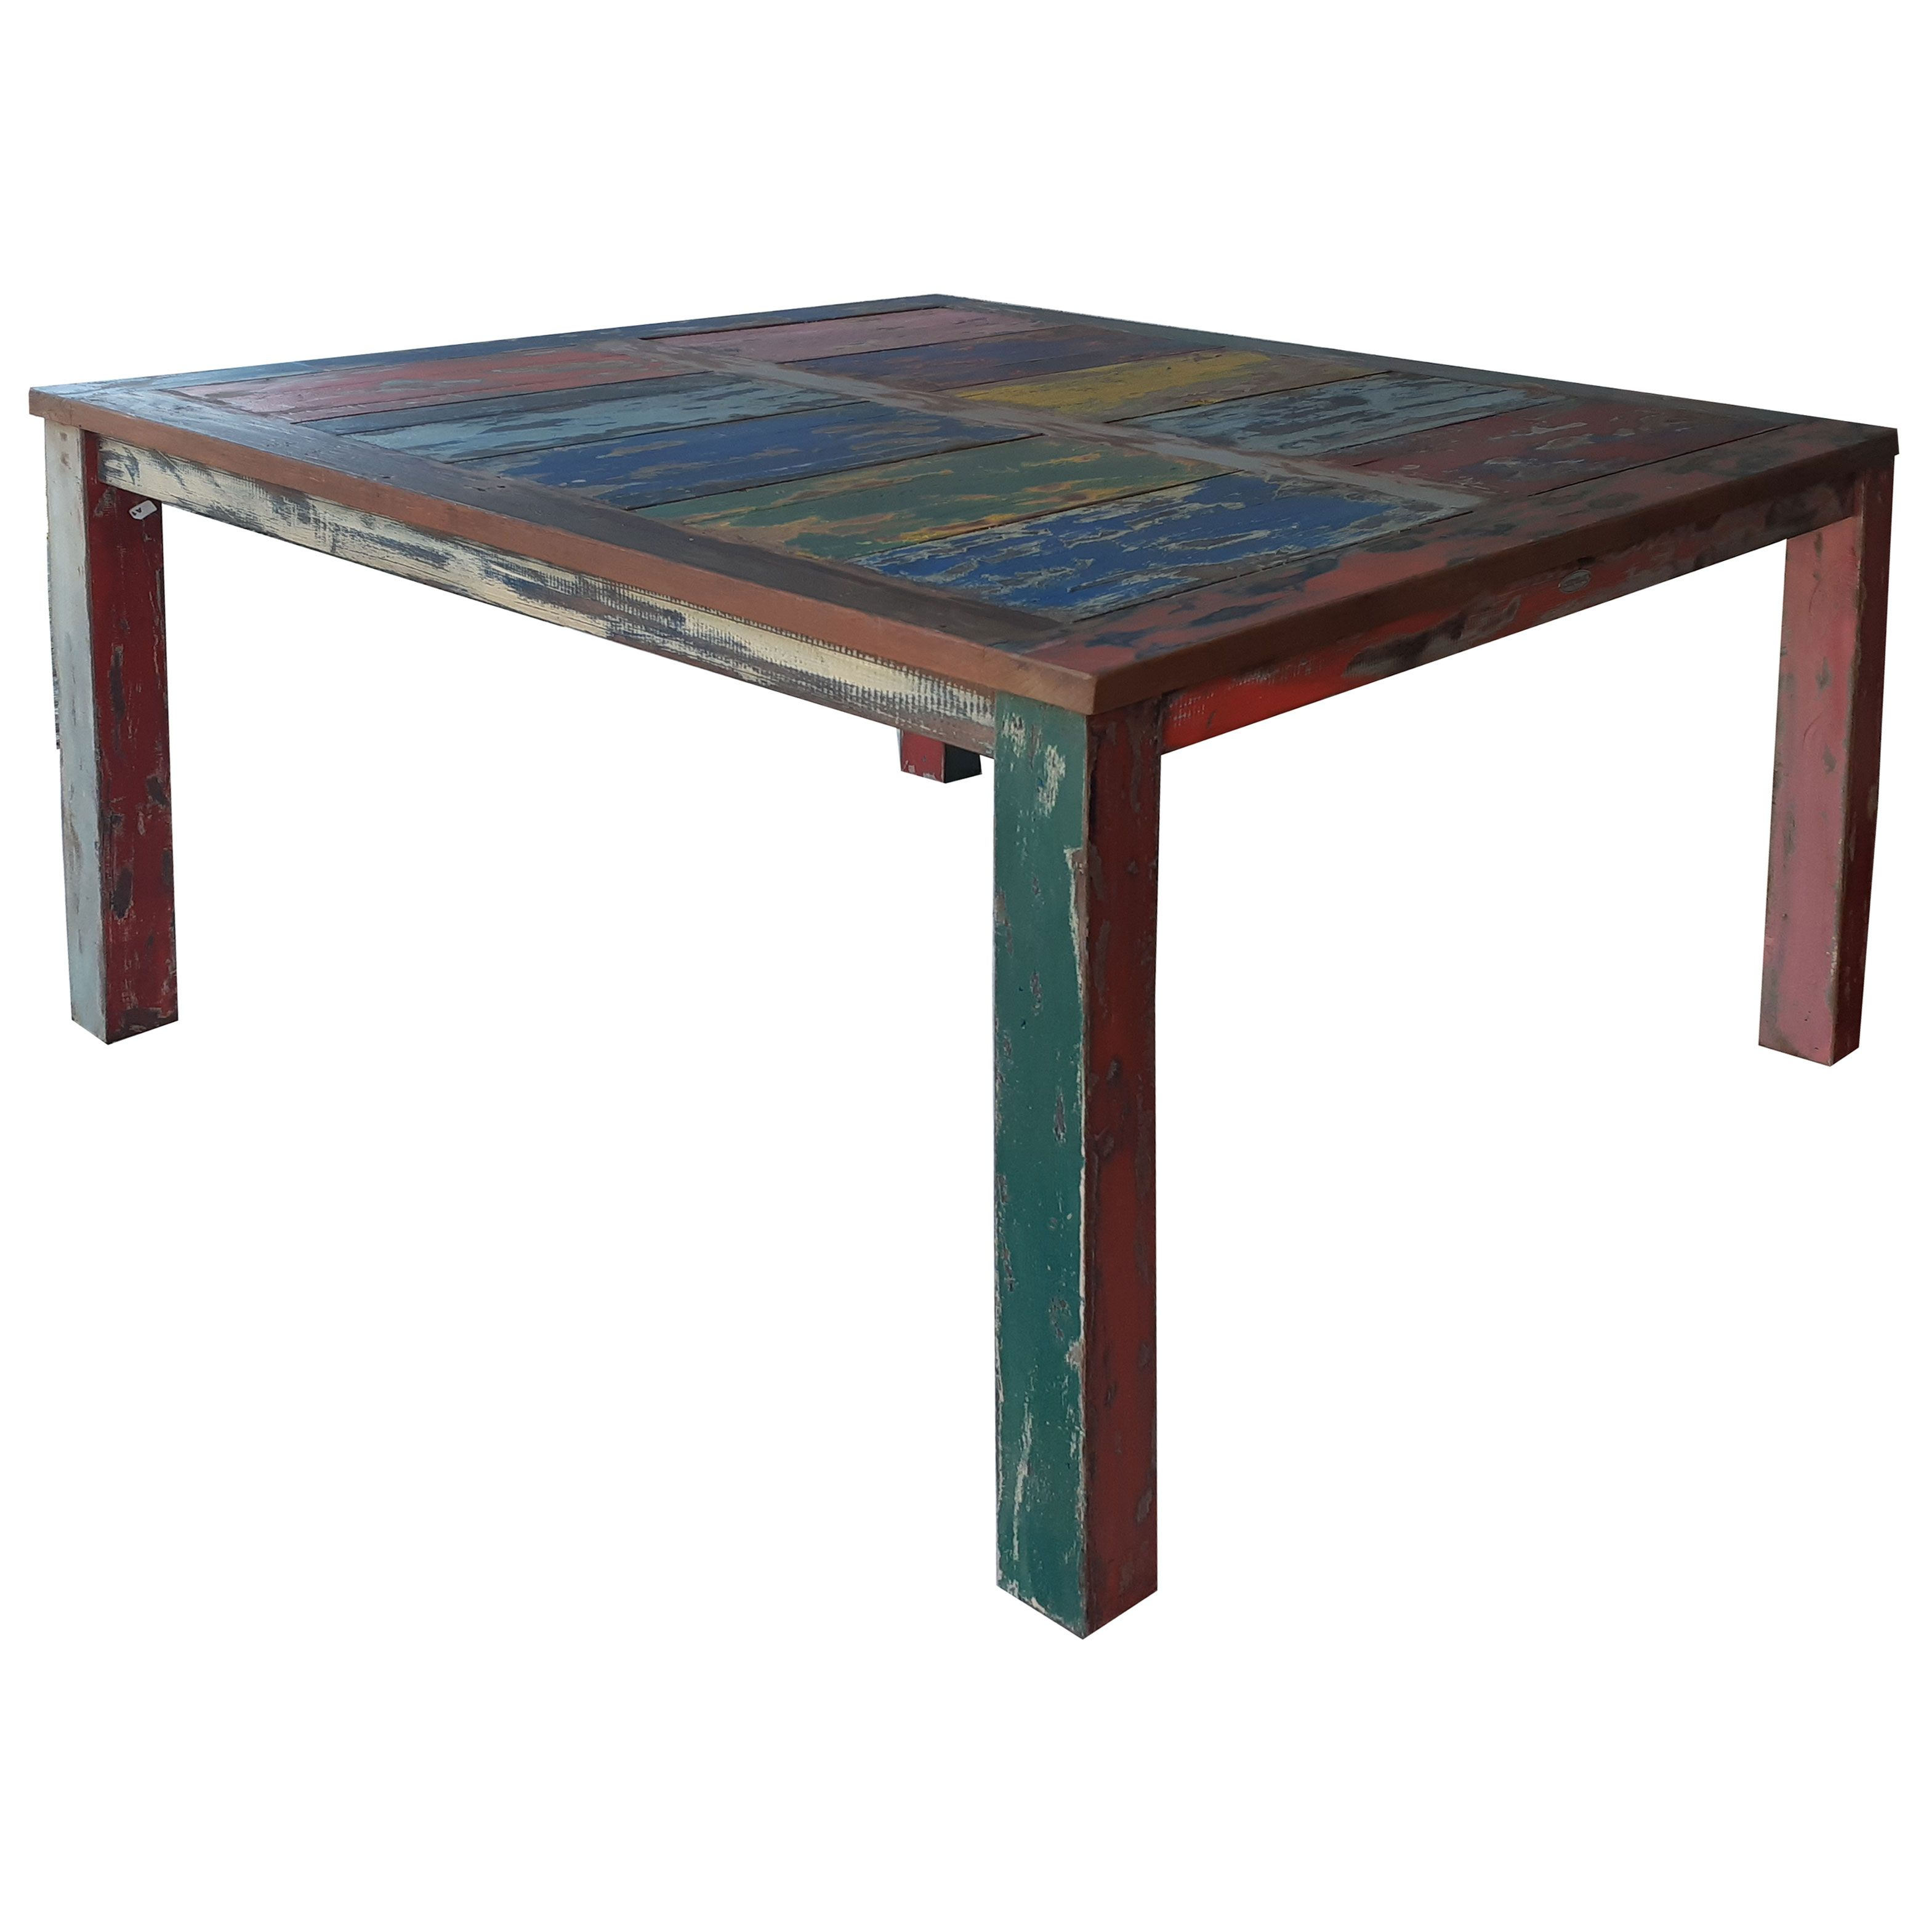 Square Dining Table Made From Recycled Teak Wood Boats 47 Inch By